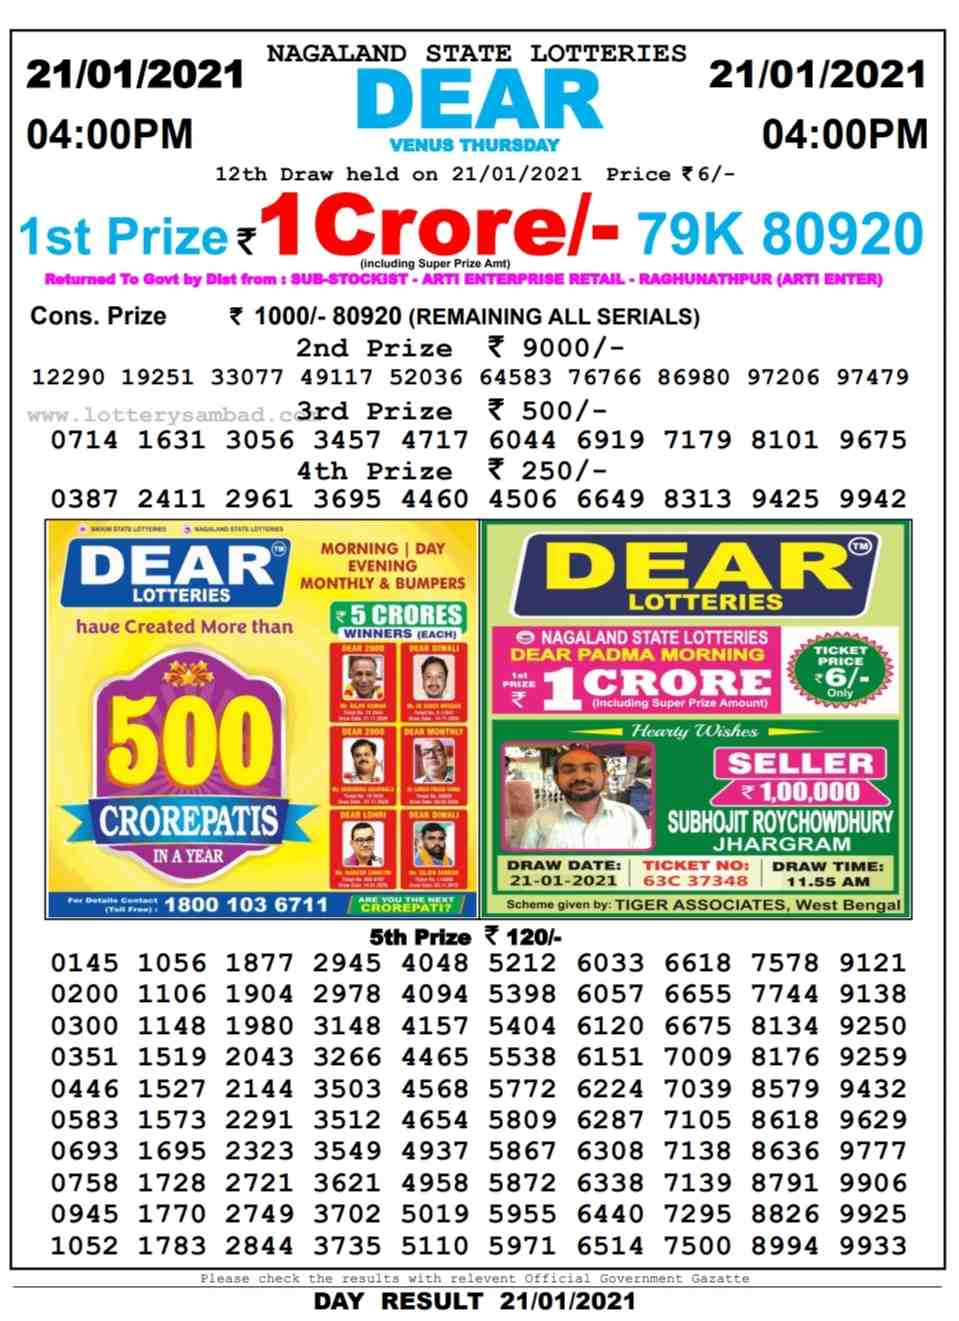 Nagaland Lottery 4 PM result on 21.1.2021